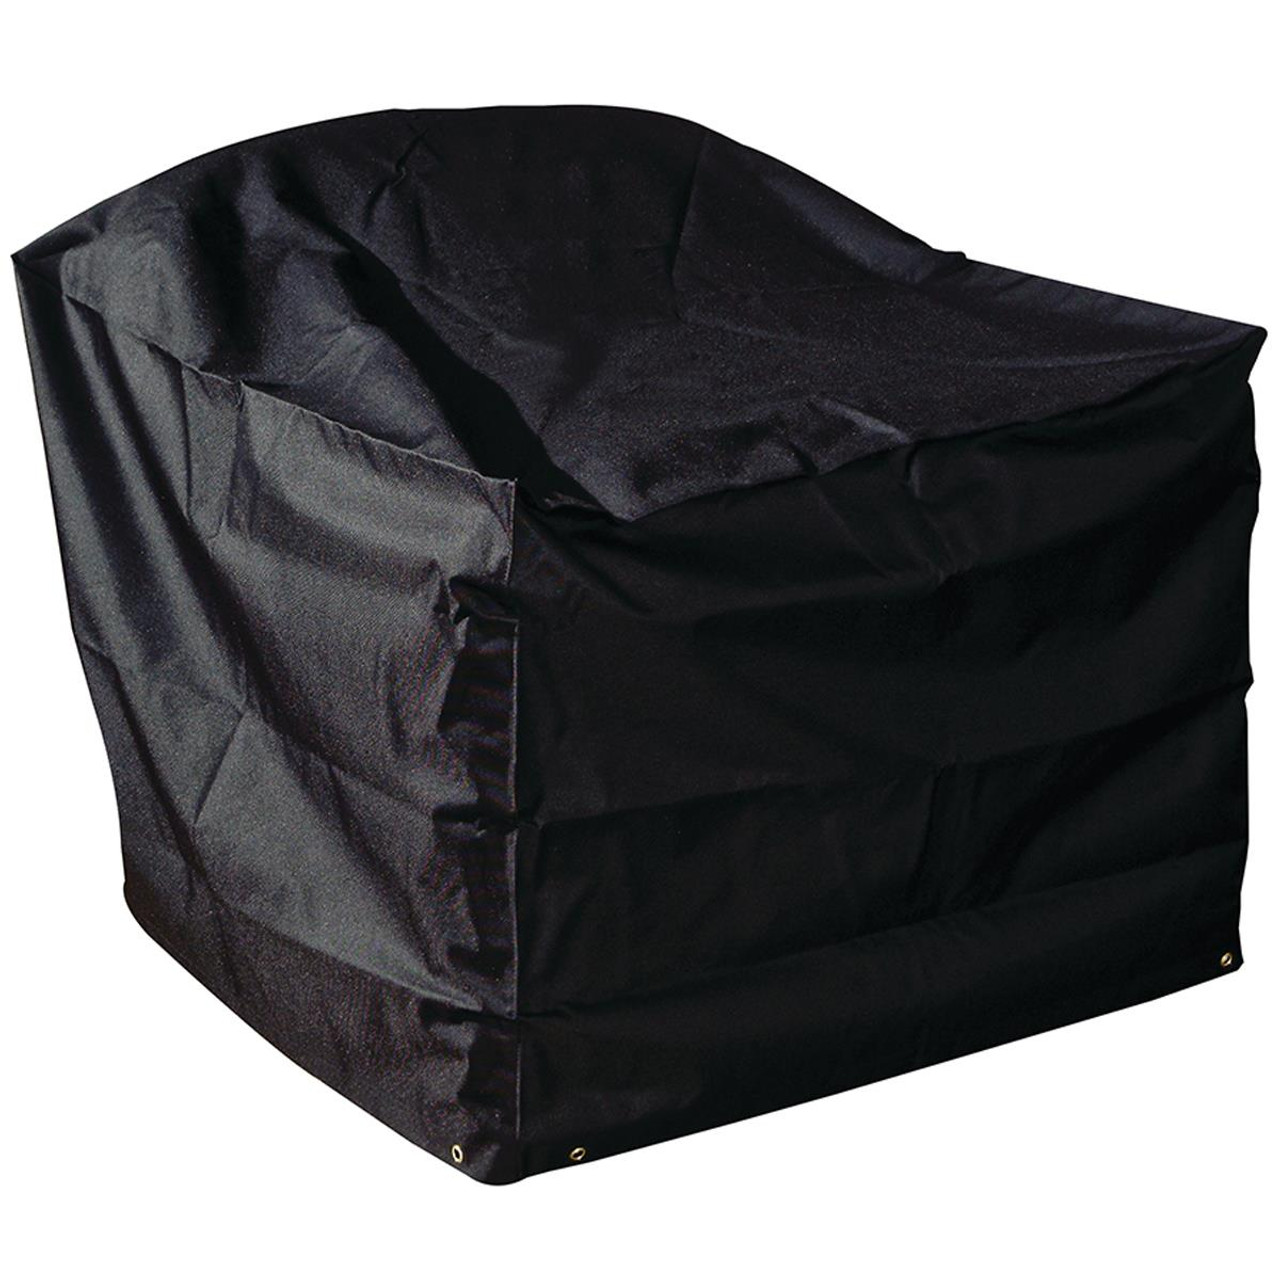 Bosmere Protector 6000 Armchair Cover Storm Black